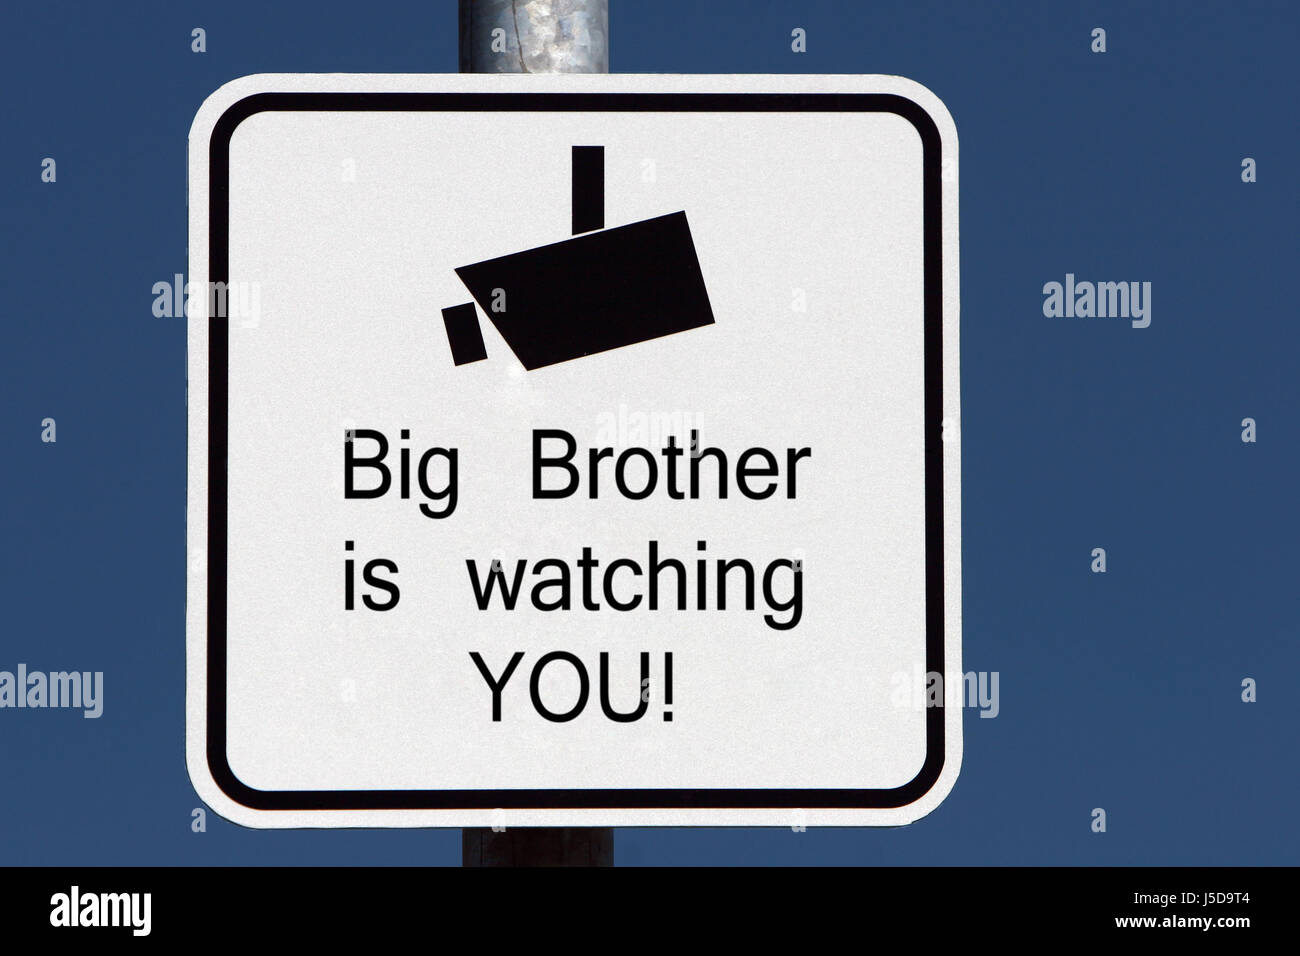 big brother is watching you - Stock Image